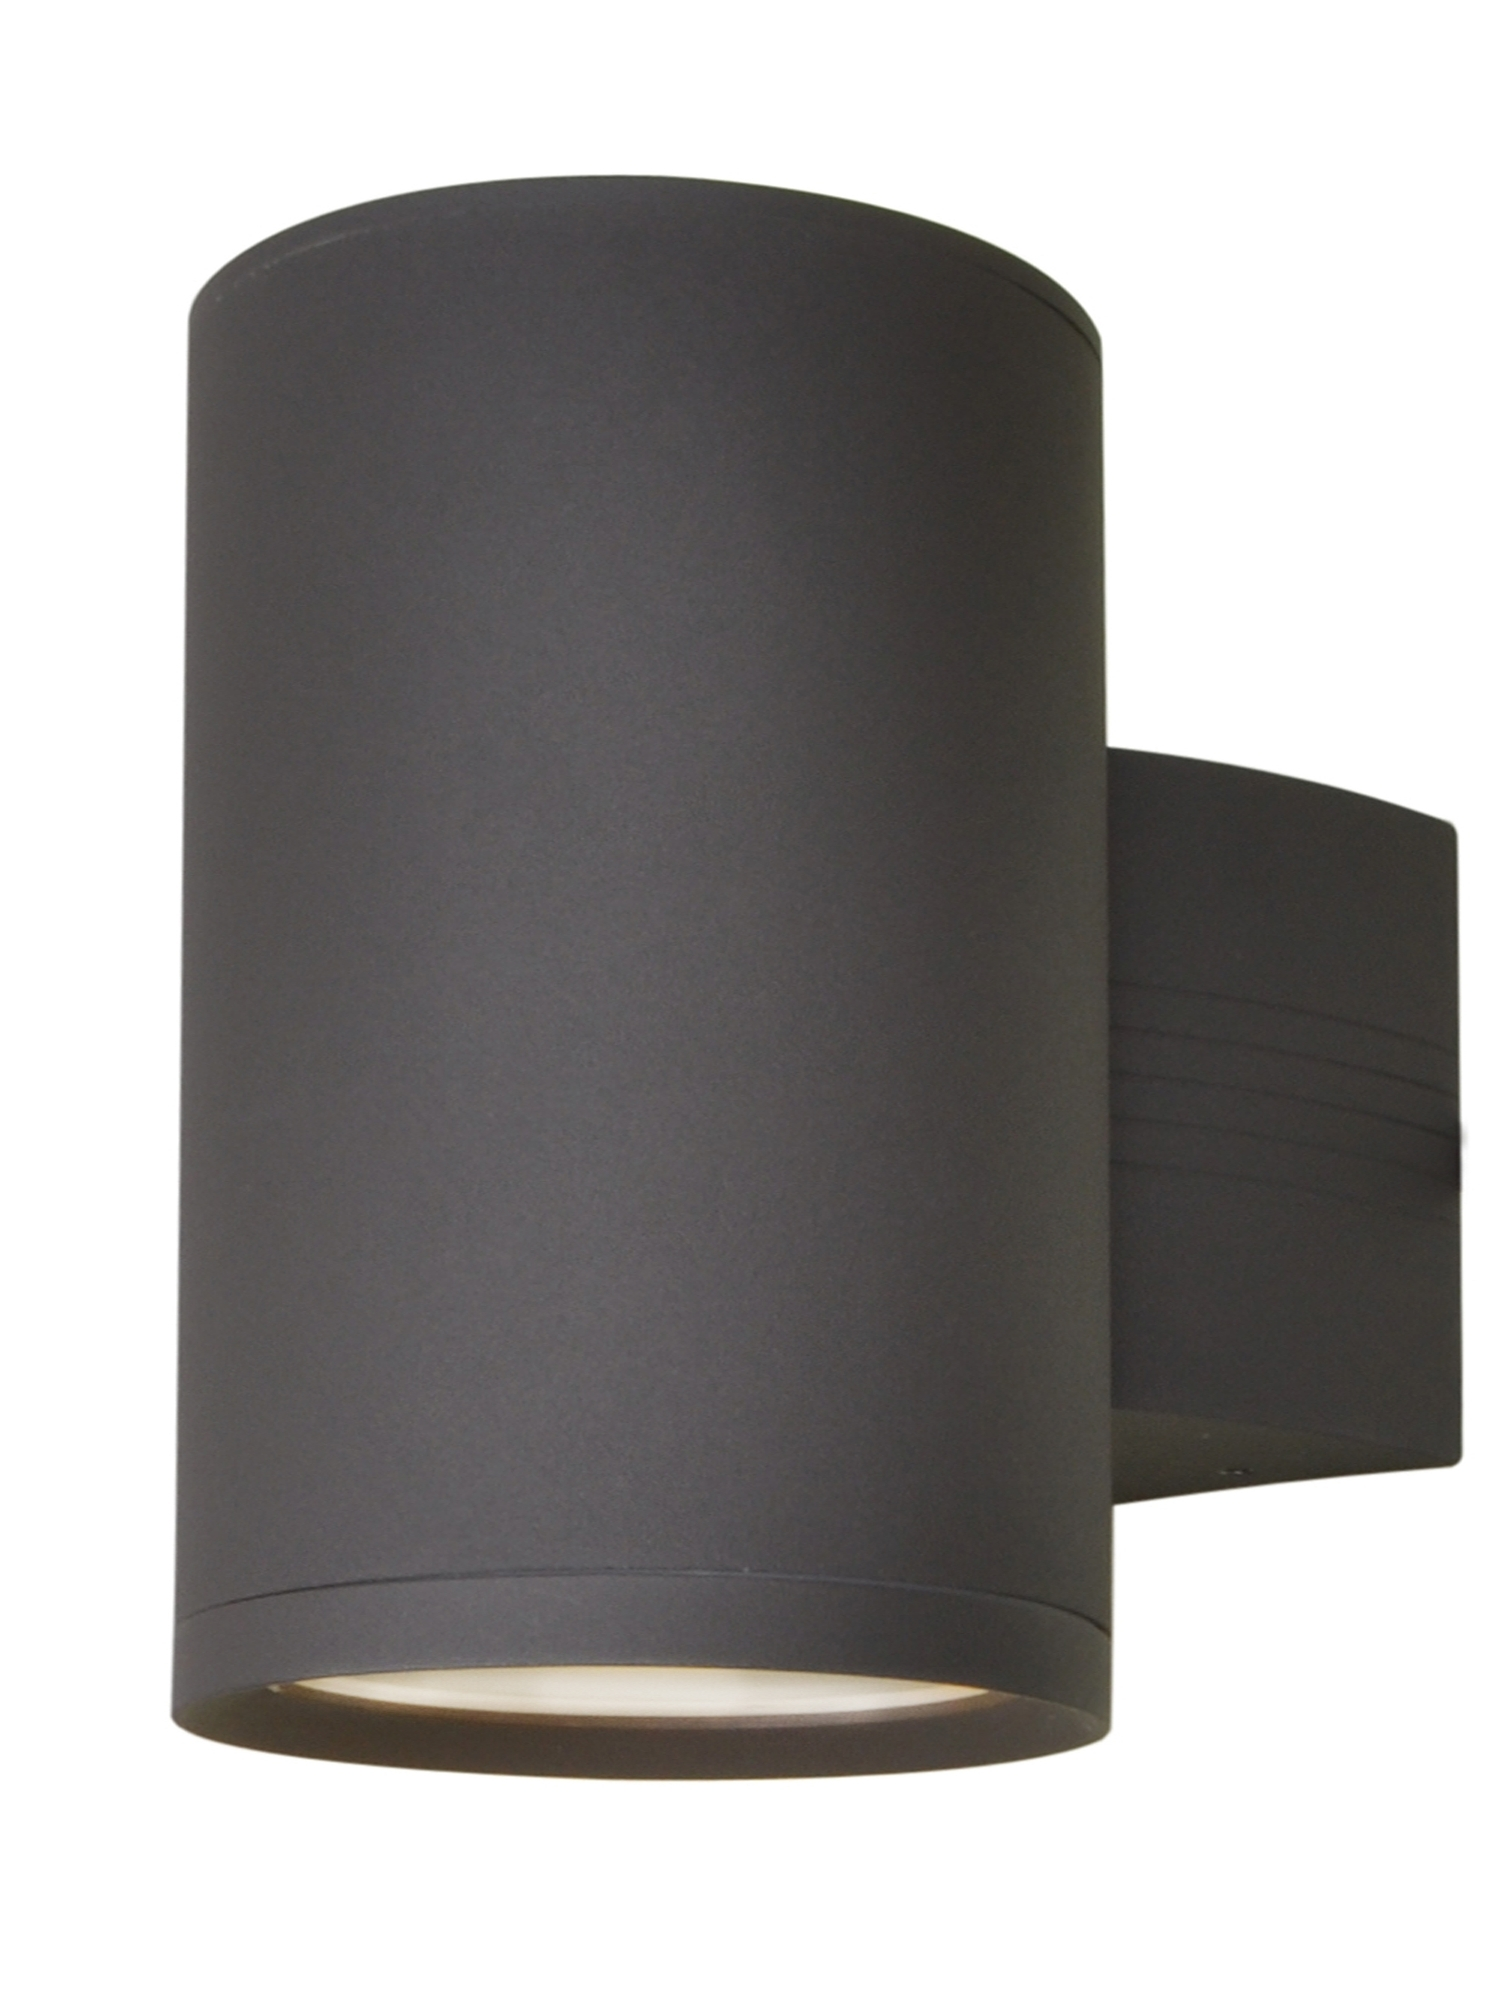 6101abz Pertaining To Sconce Outdoor Wall Lighting (View 5 of 20)